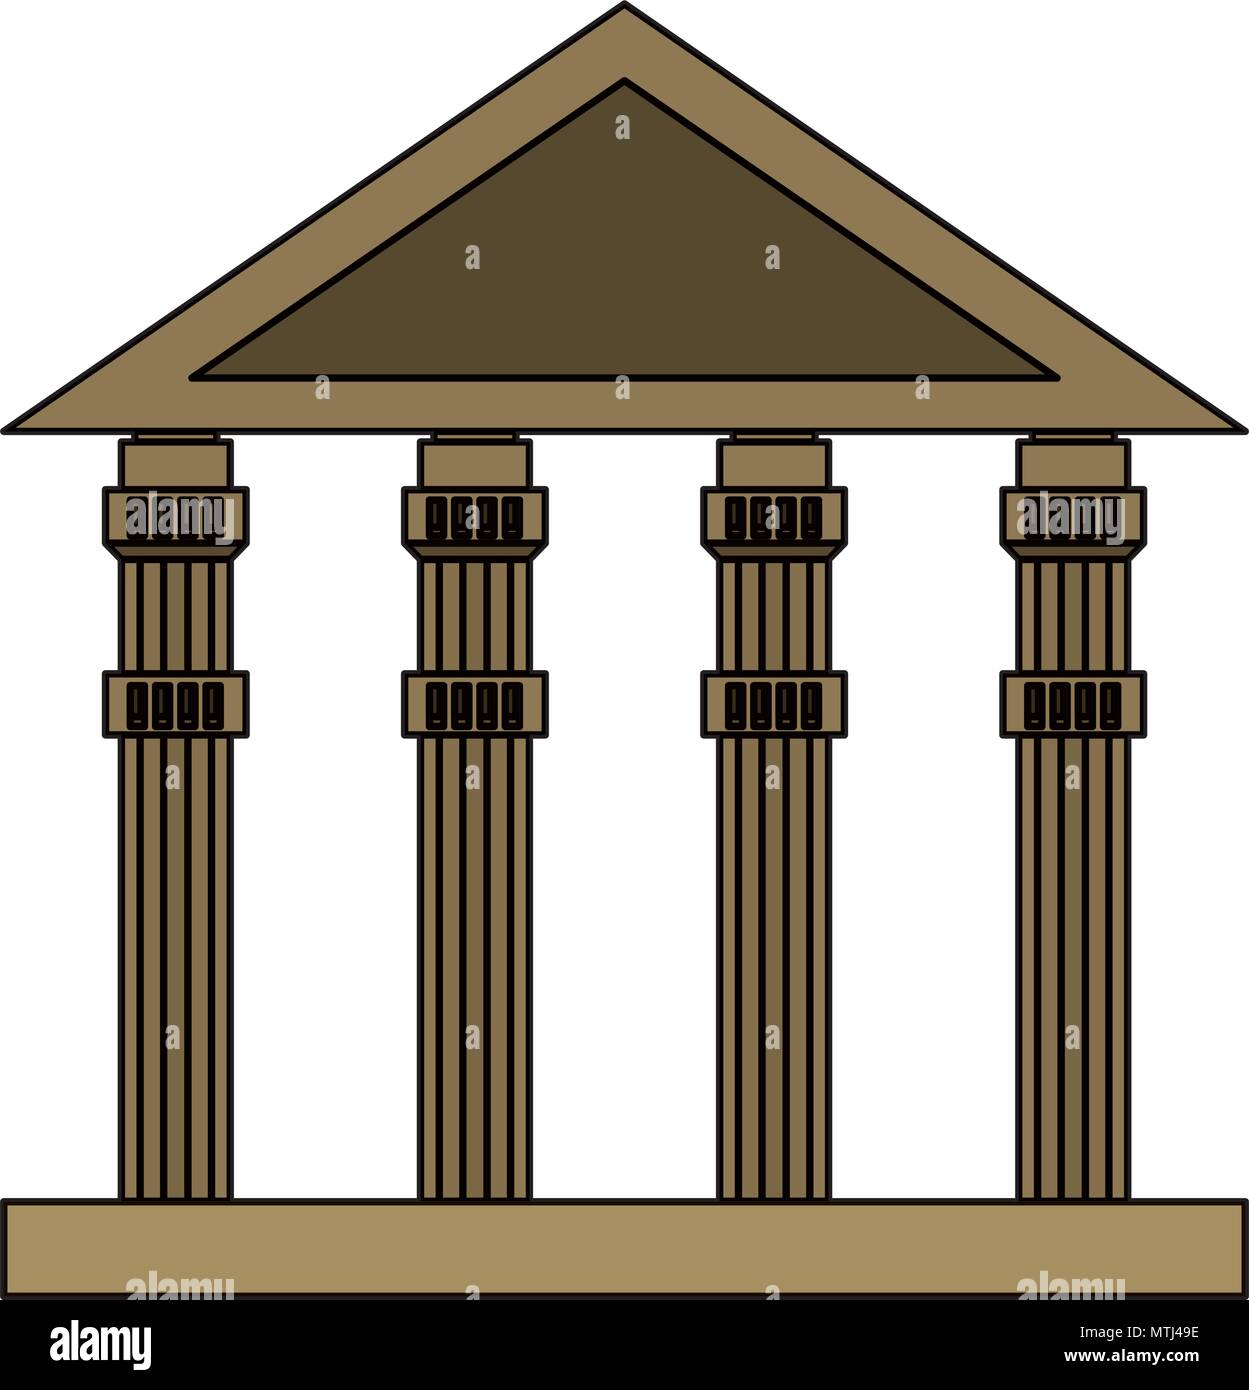 ancient greek building over white background, vector illustration - Stock Vector